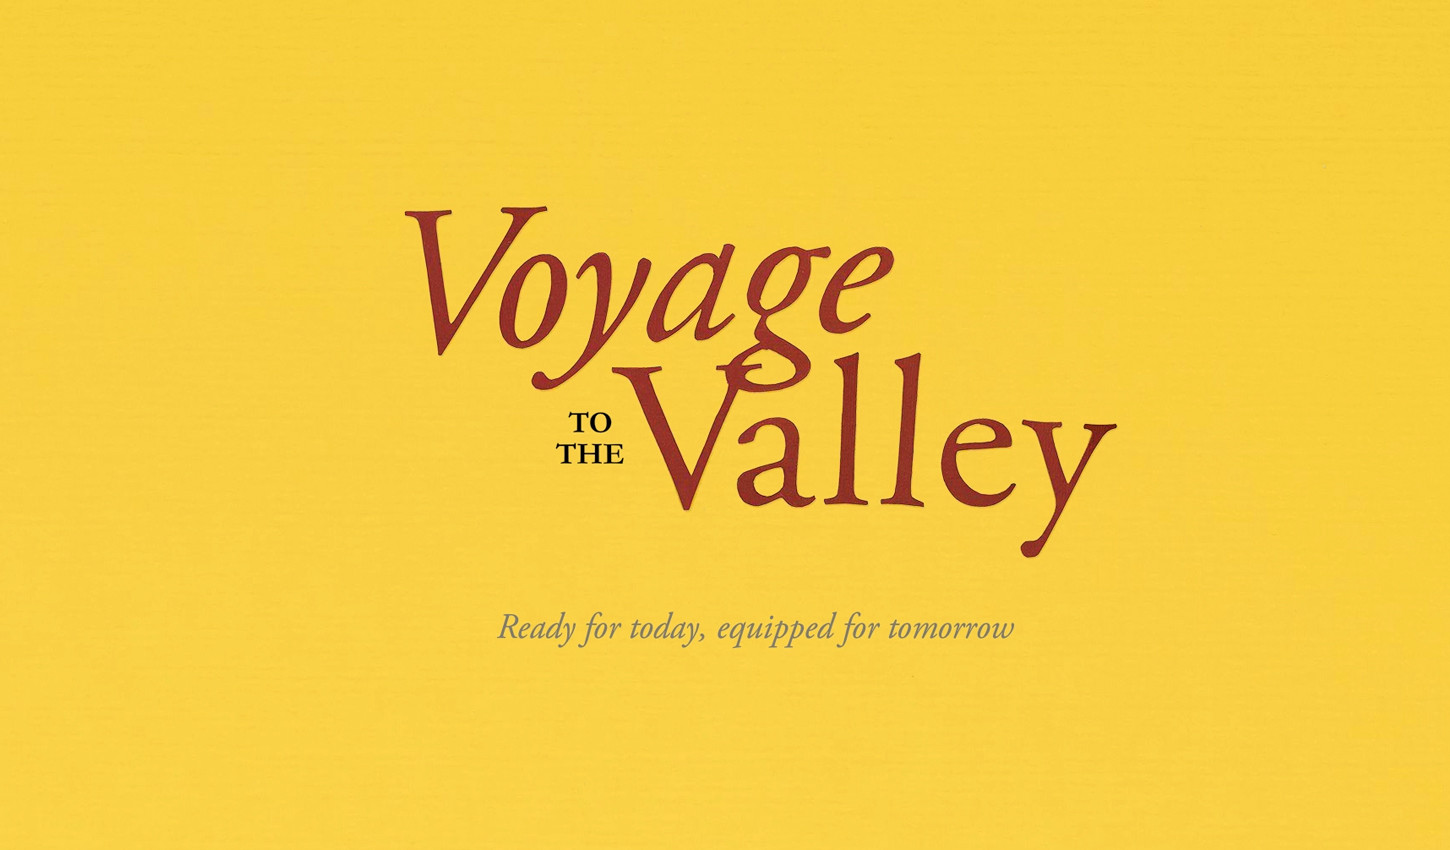 Allen & Overy: Voyage to the Valley 2019